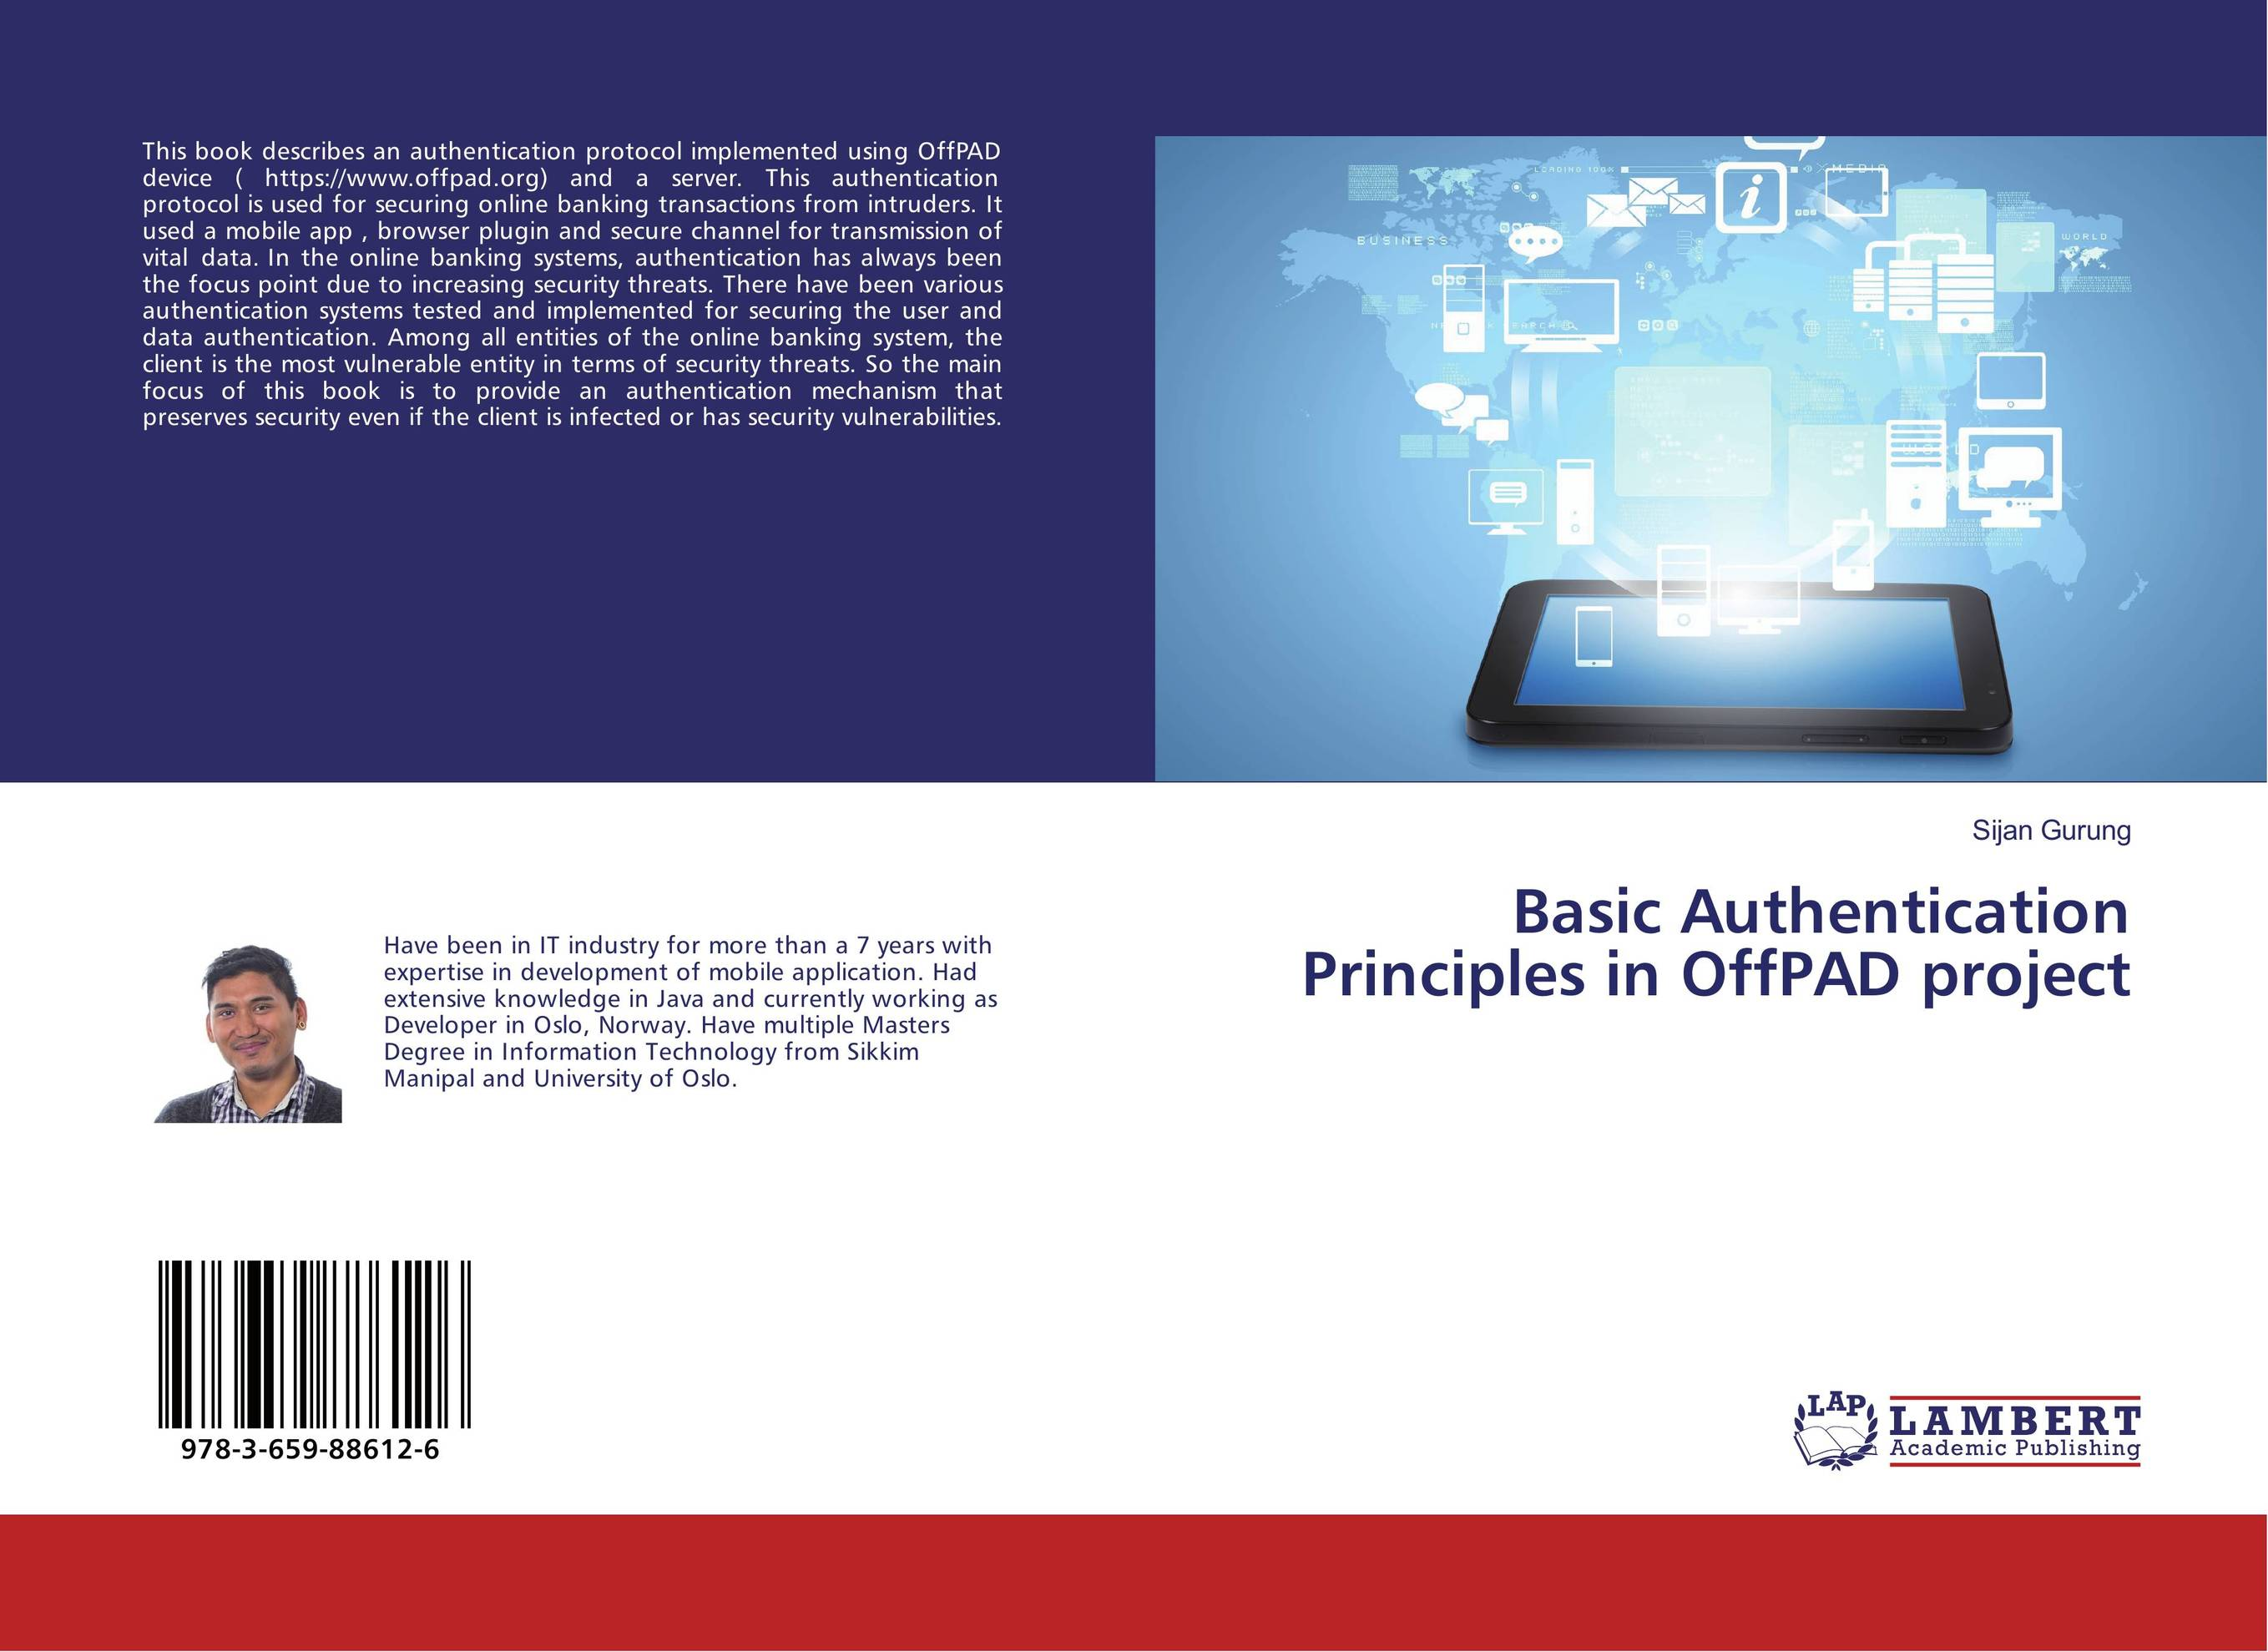 Basic Authentication Principles in OffPAD project